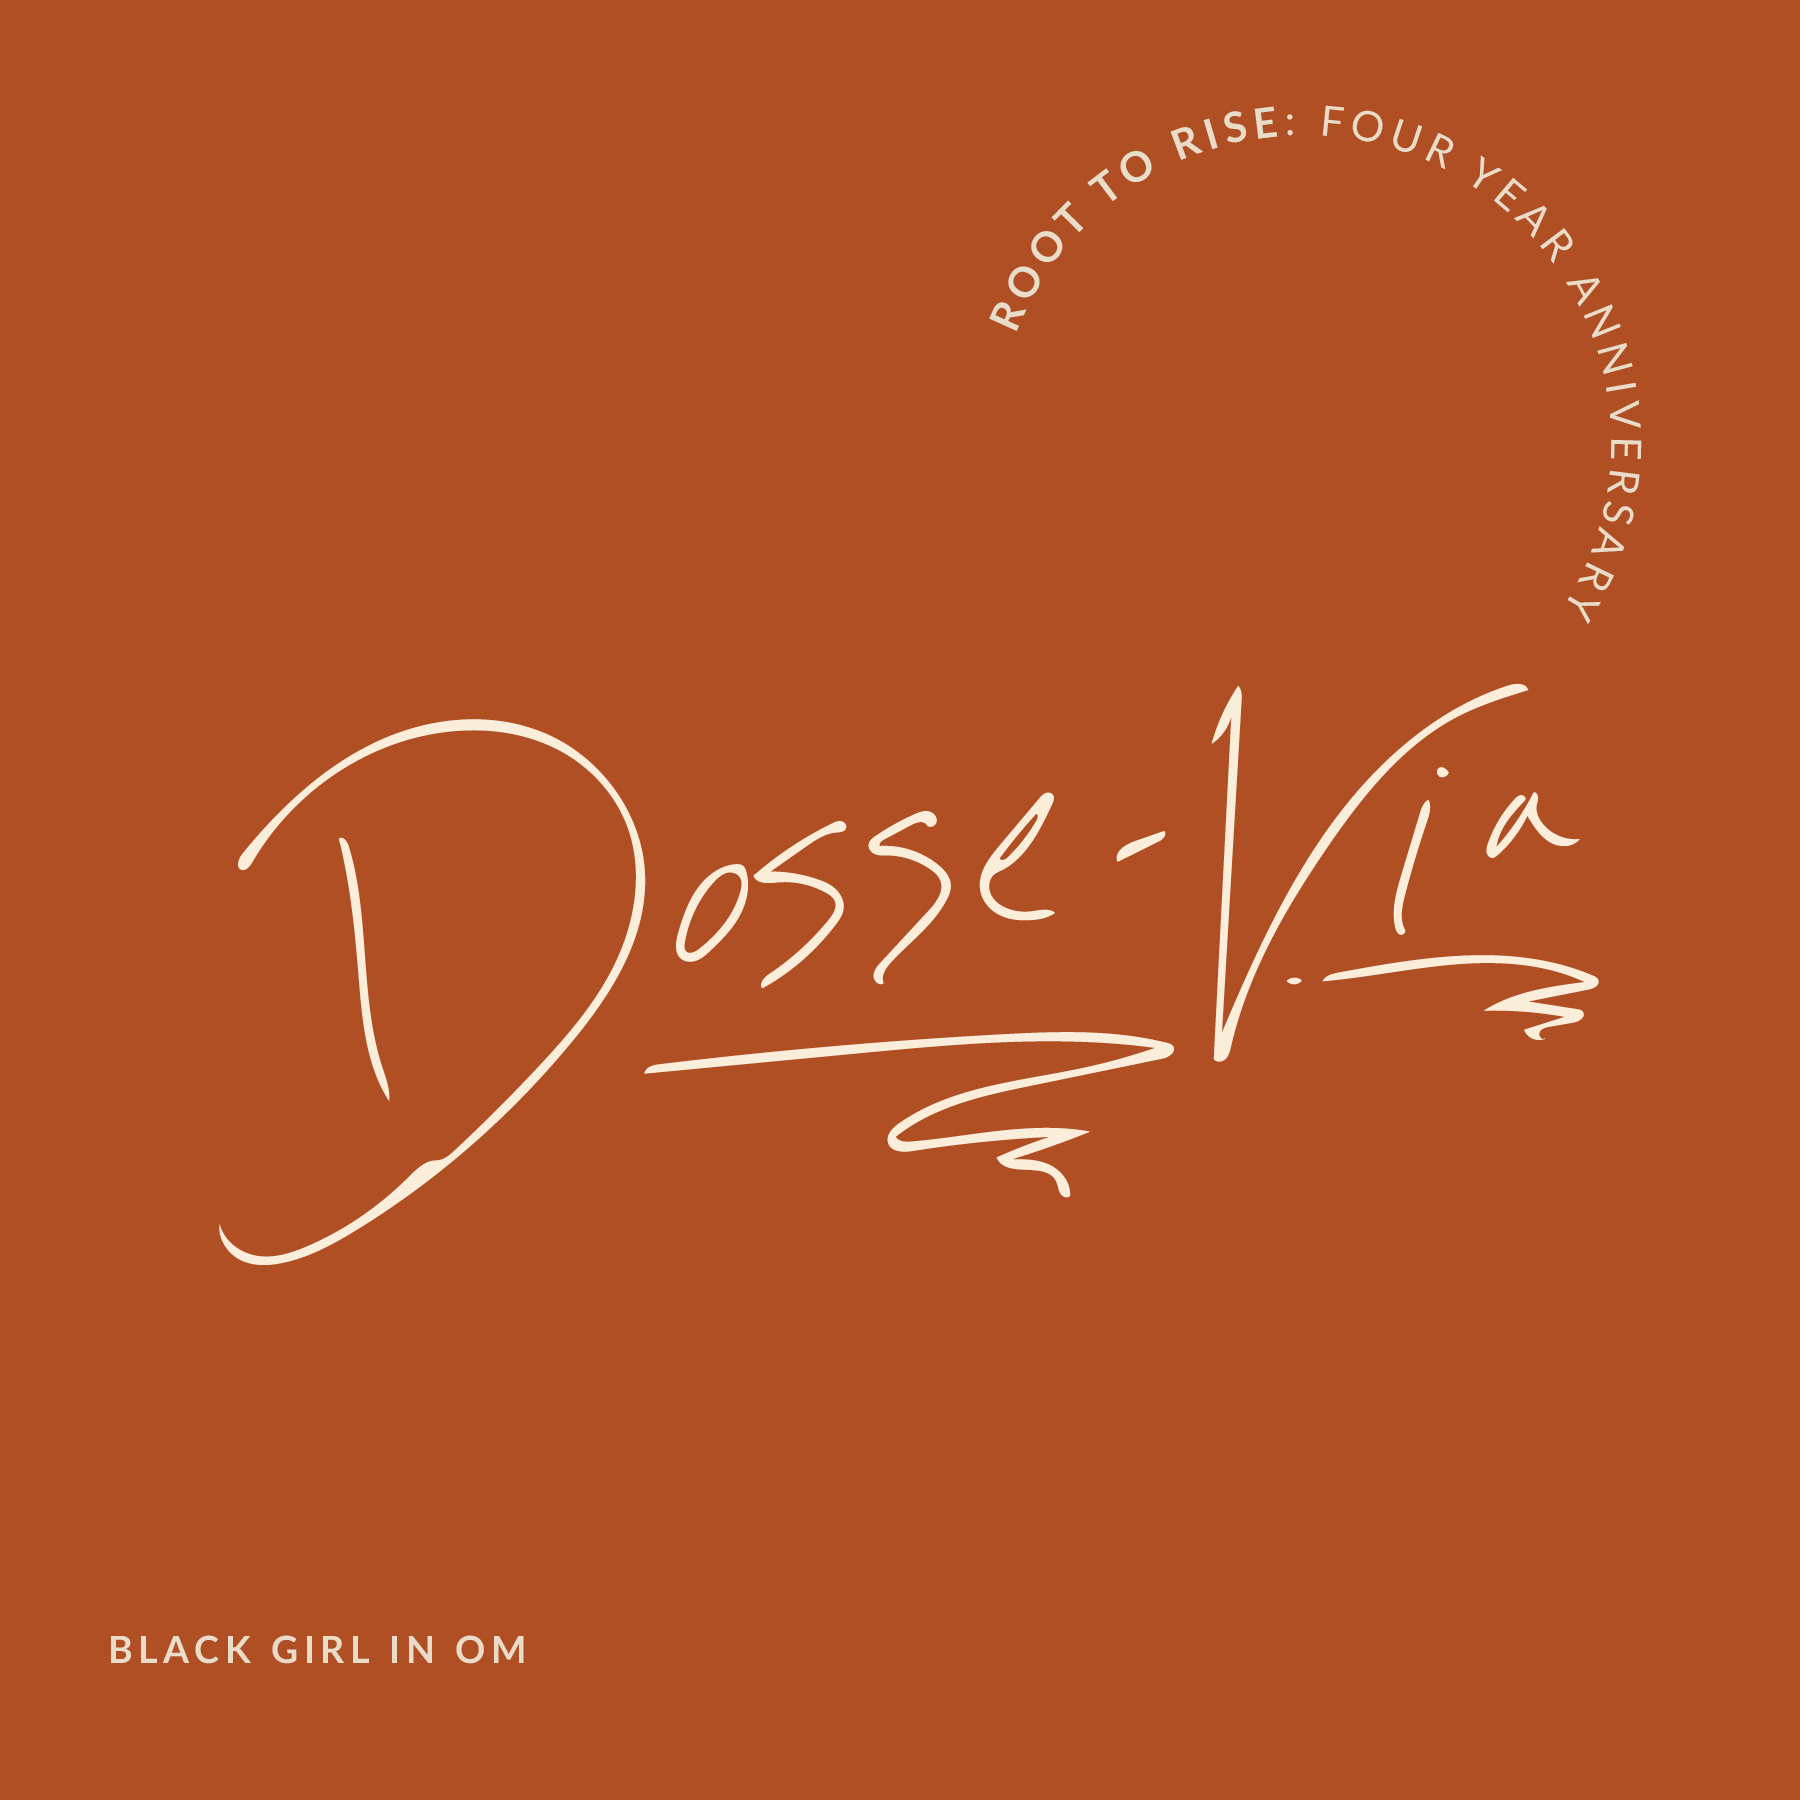 Dosse-Via Root to Rise Name.jpg